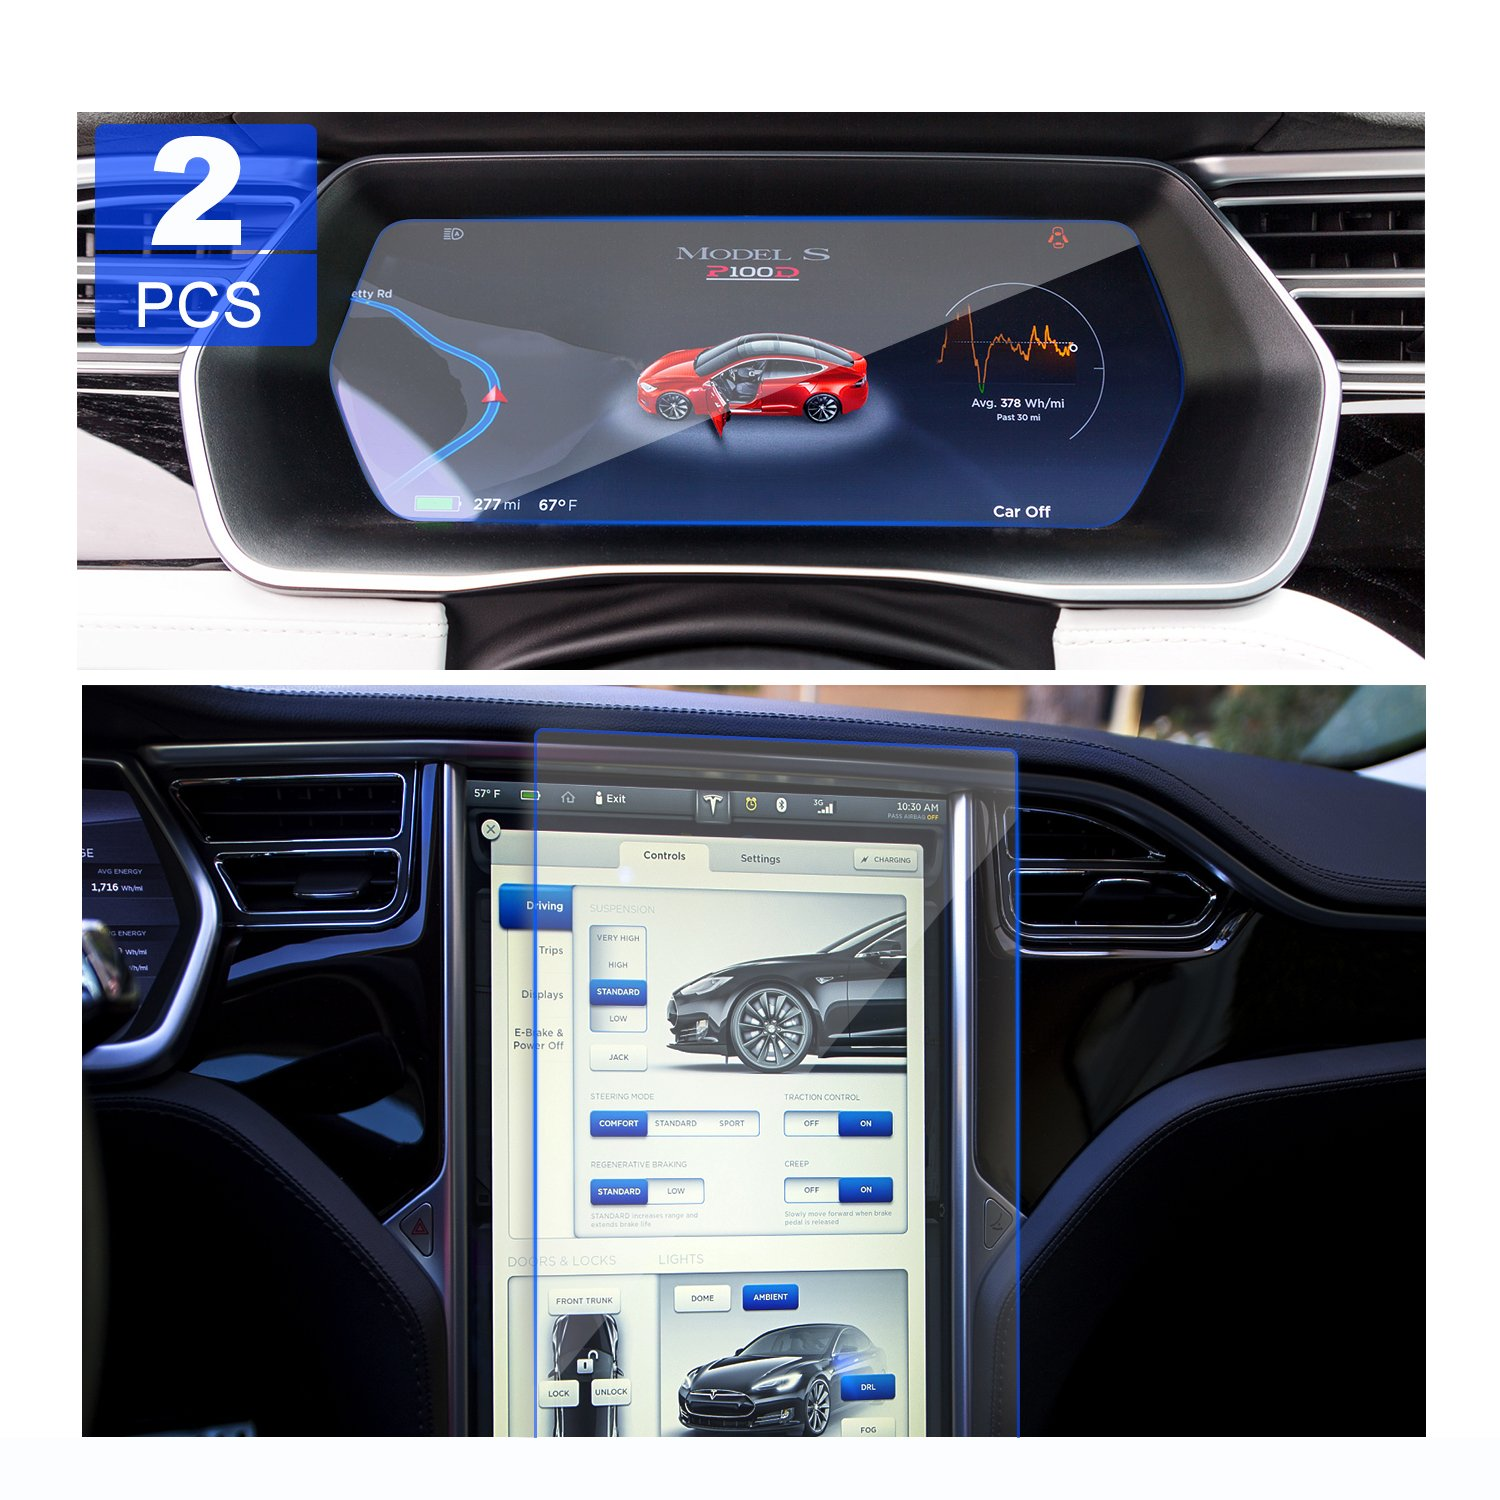 LFOTPP 2PCS GLASS Tesla Model X/Model S Car Navigation Screen Protector and Dash panel Screen Protector, 2PCS Combined Package Clear Tempered Glass Screen Protector Anti Scratch High Clarity